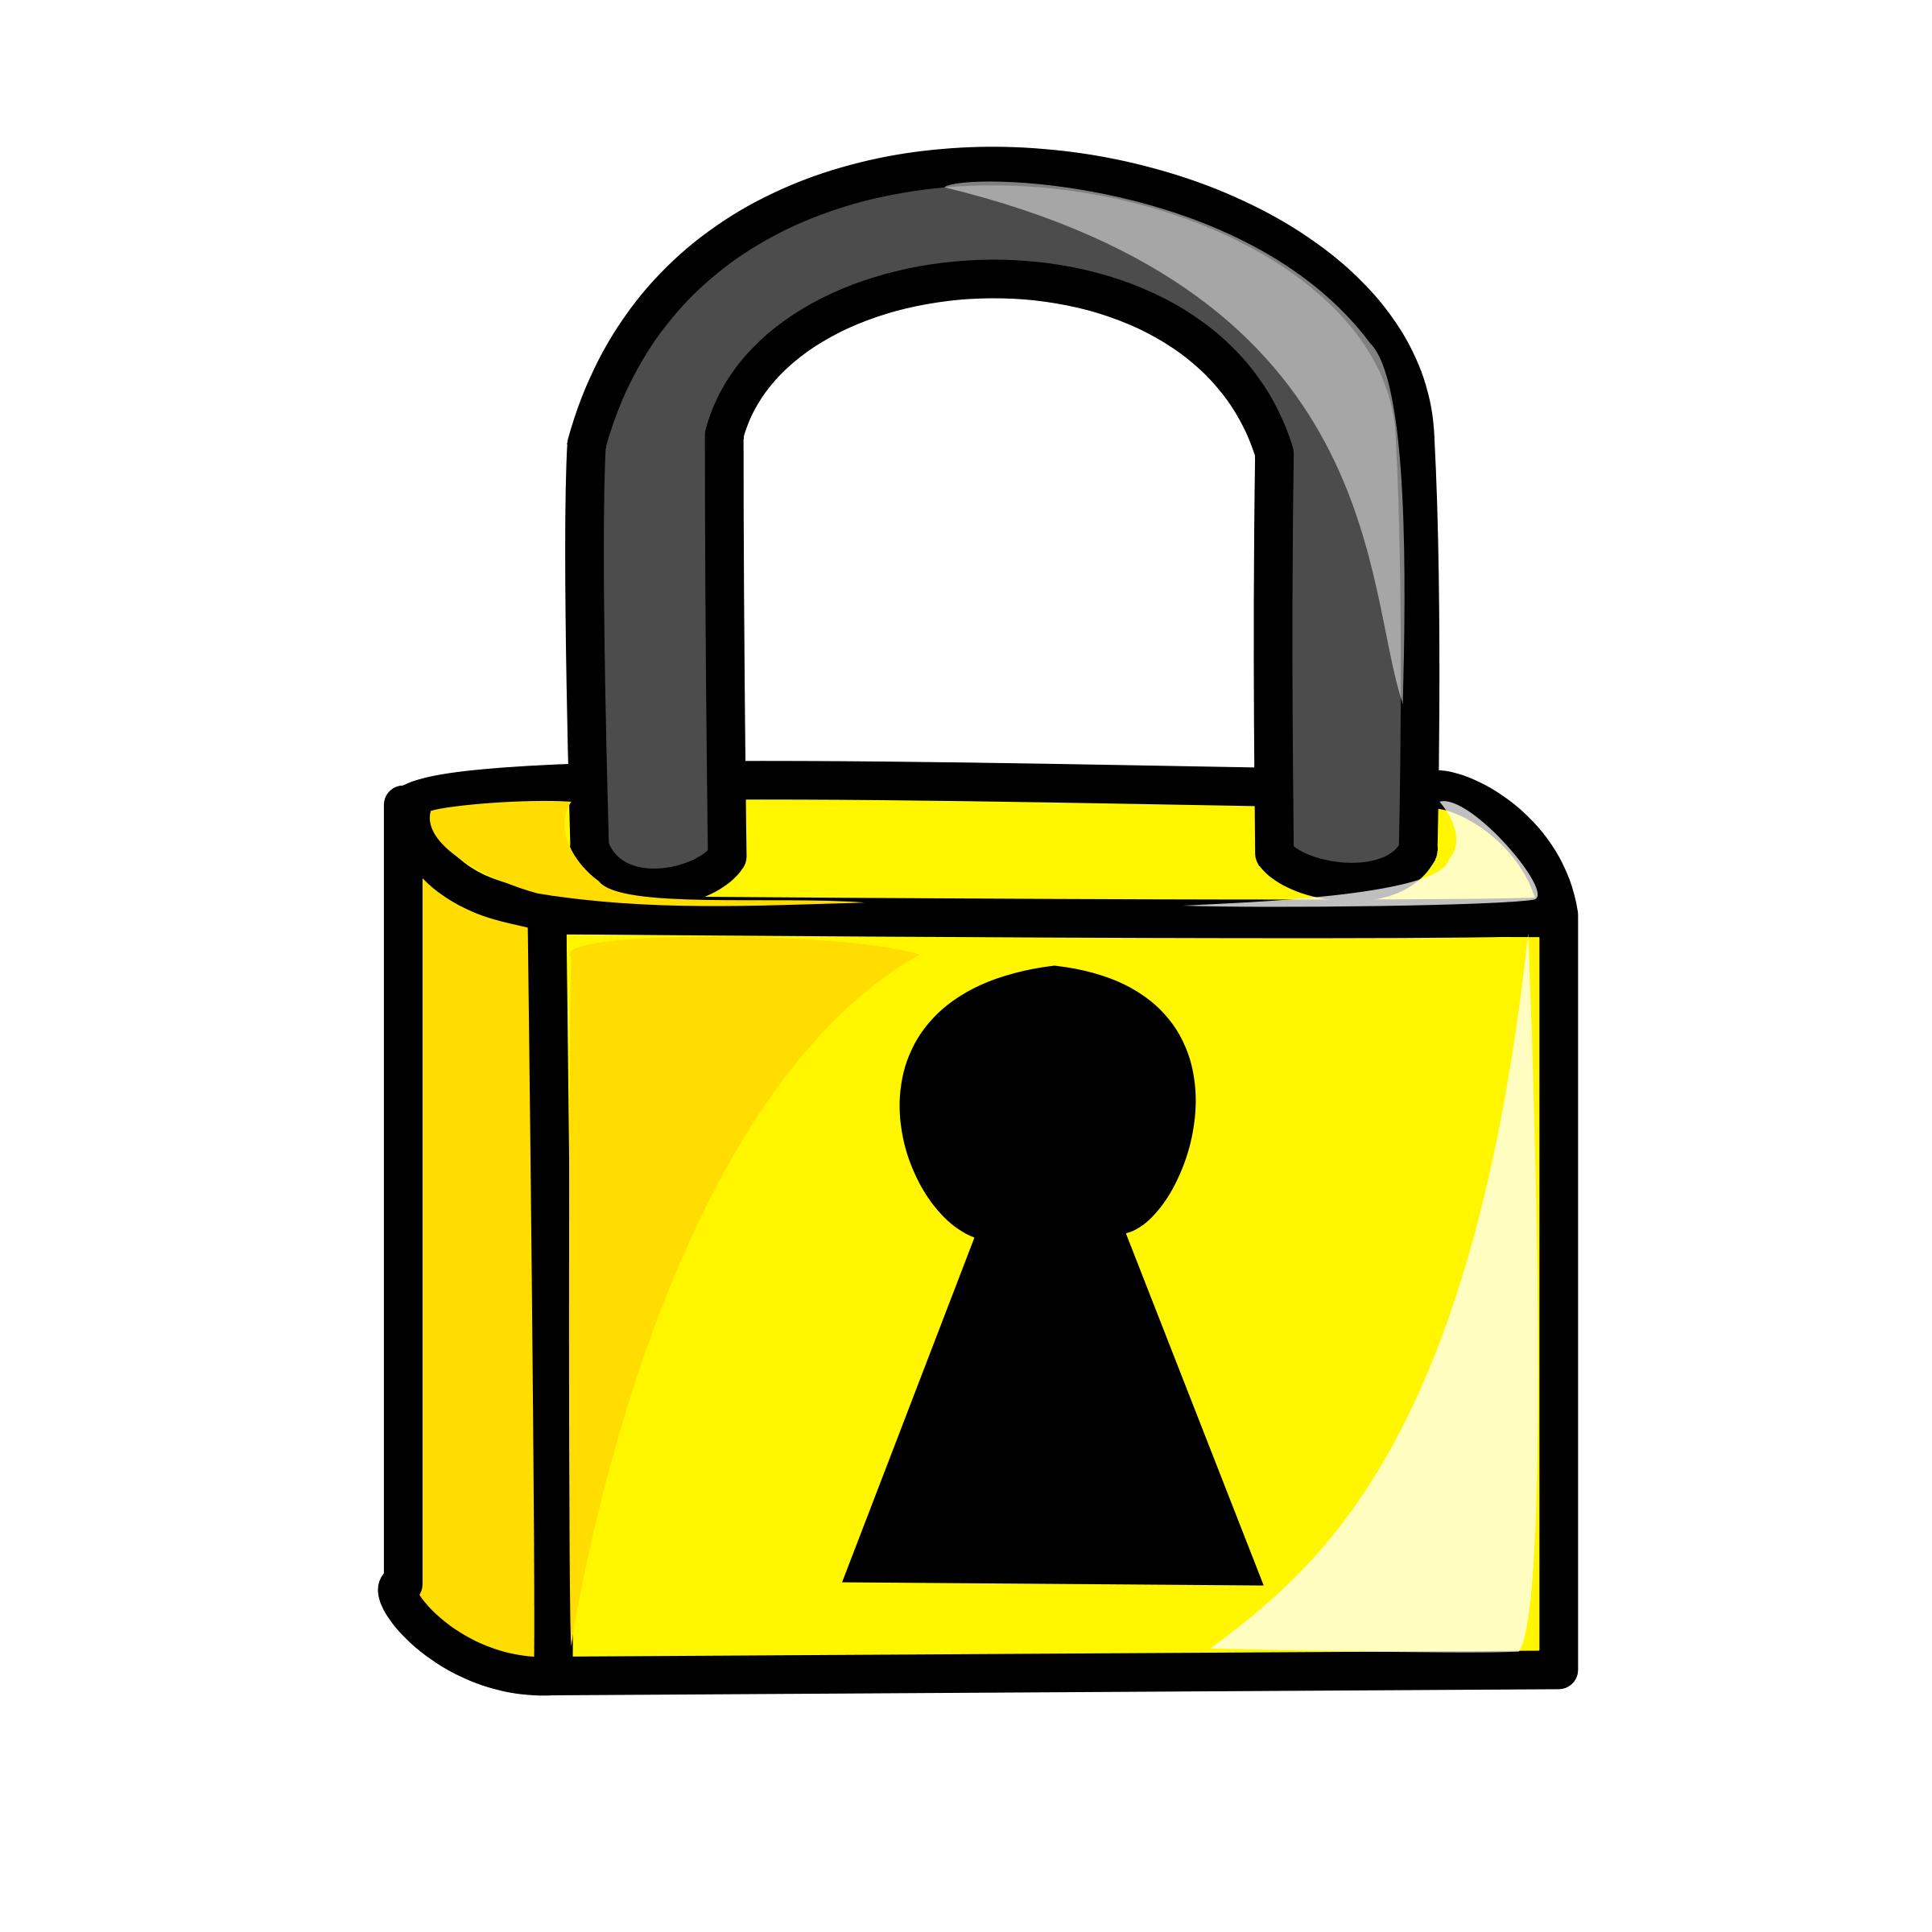 royalty free library Security clipart. Free download clip art